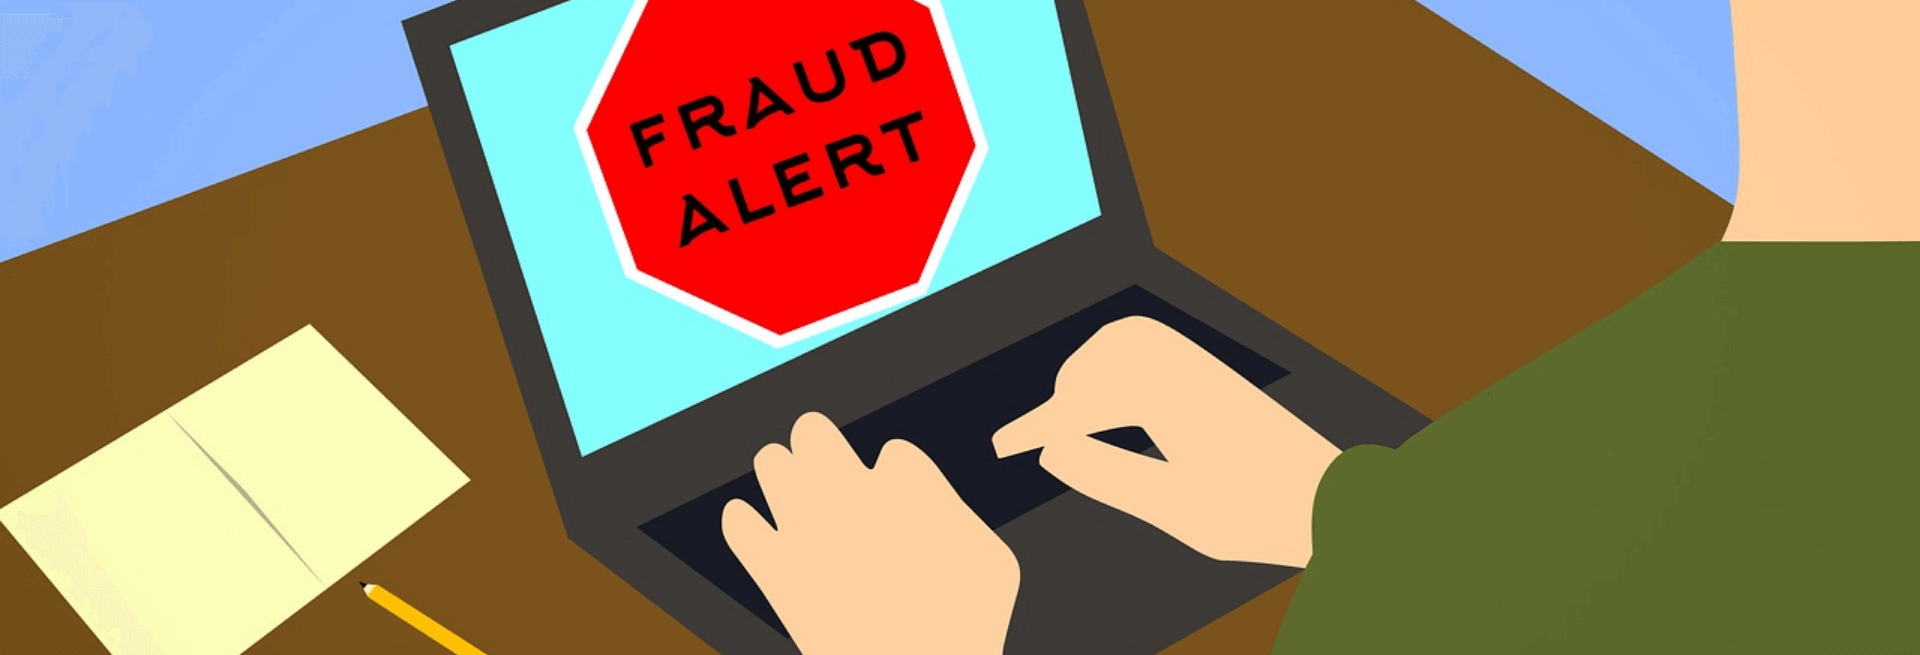 digital AND PROGRAMMATIC AD FRAUD